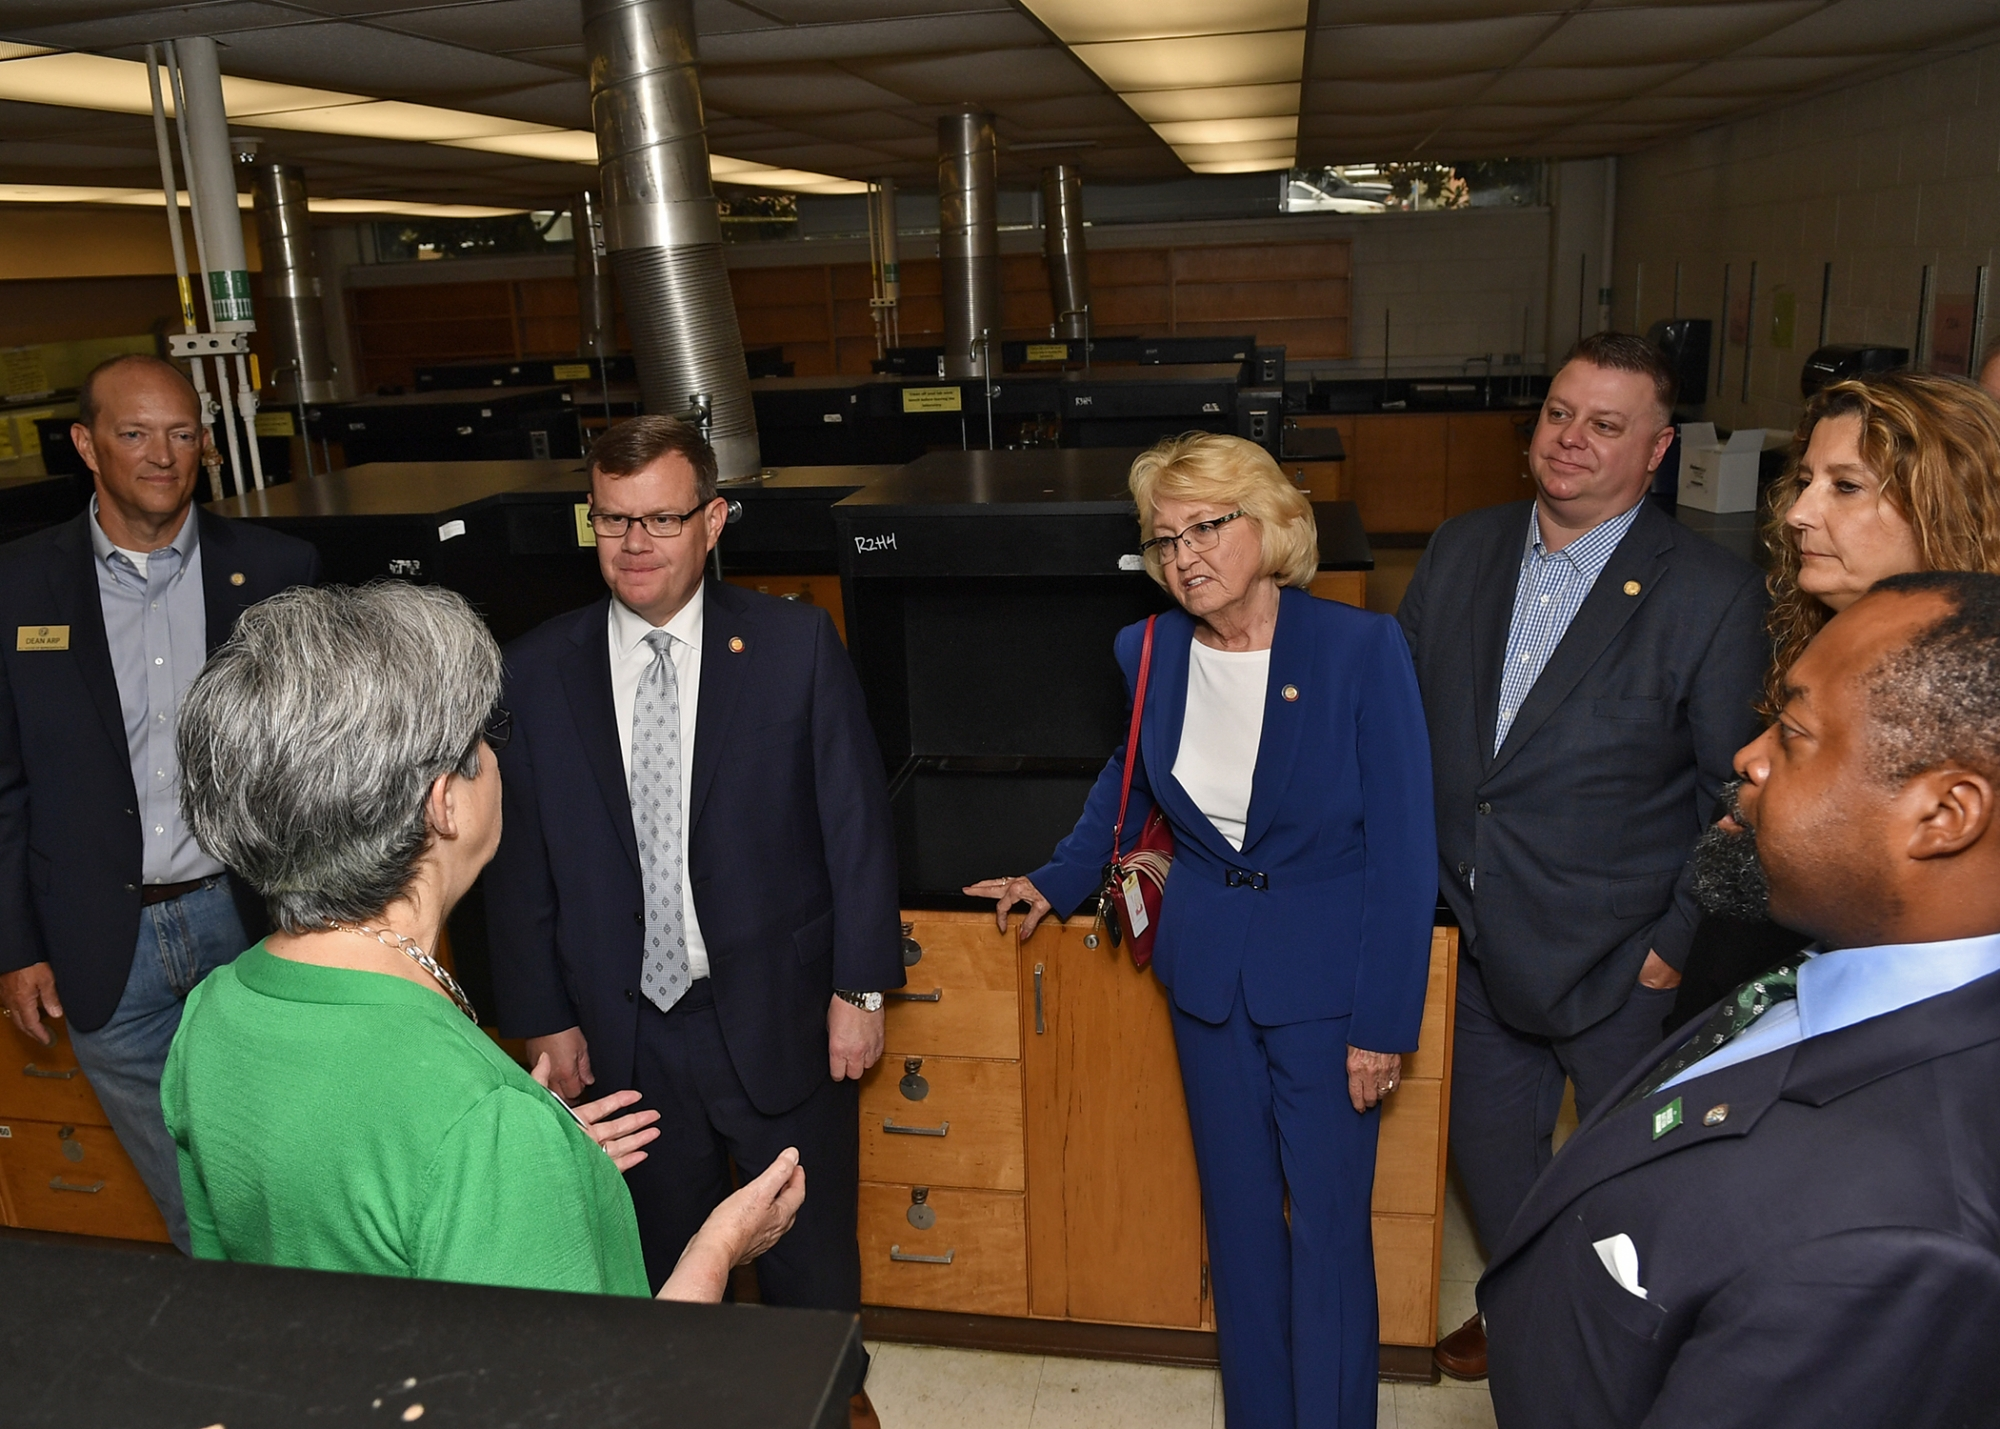 Provost Joan Lorden discusses pending renovations to the Burson and Cameron science buildings with North Carolina Representatives Dean Arp '99, House Speaker Tim Moore, Linda Johnson, Jason Saine '95, Chemistry Chair Bernadette Donovan-Merkert and UNC Charlotte Trustee Teross Young '93